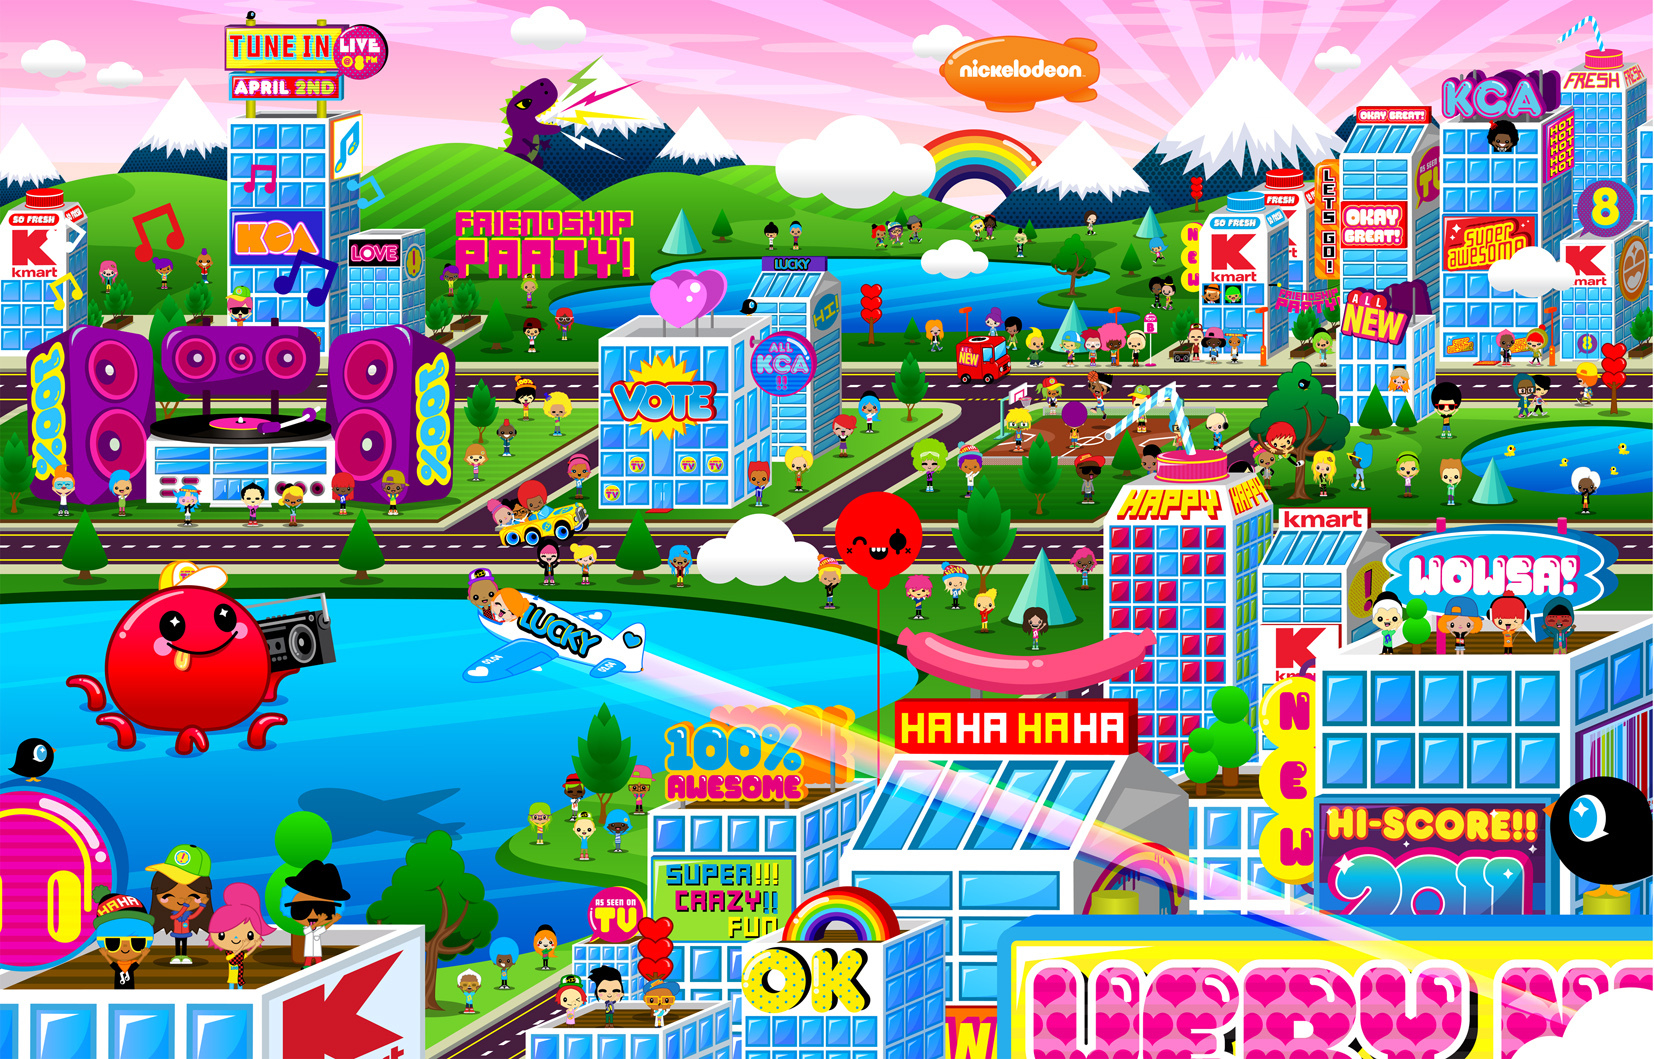 Nickelodeon & K-Mart KCA Party Sweepstakes 2011 Cityscape